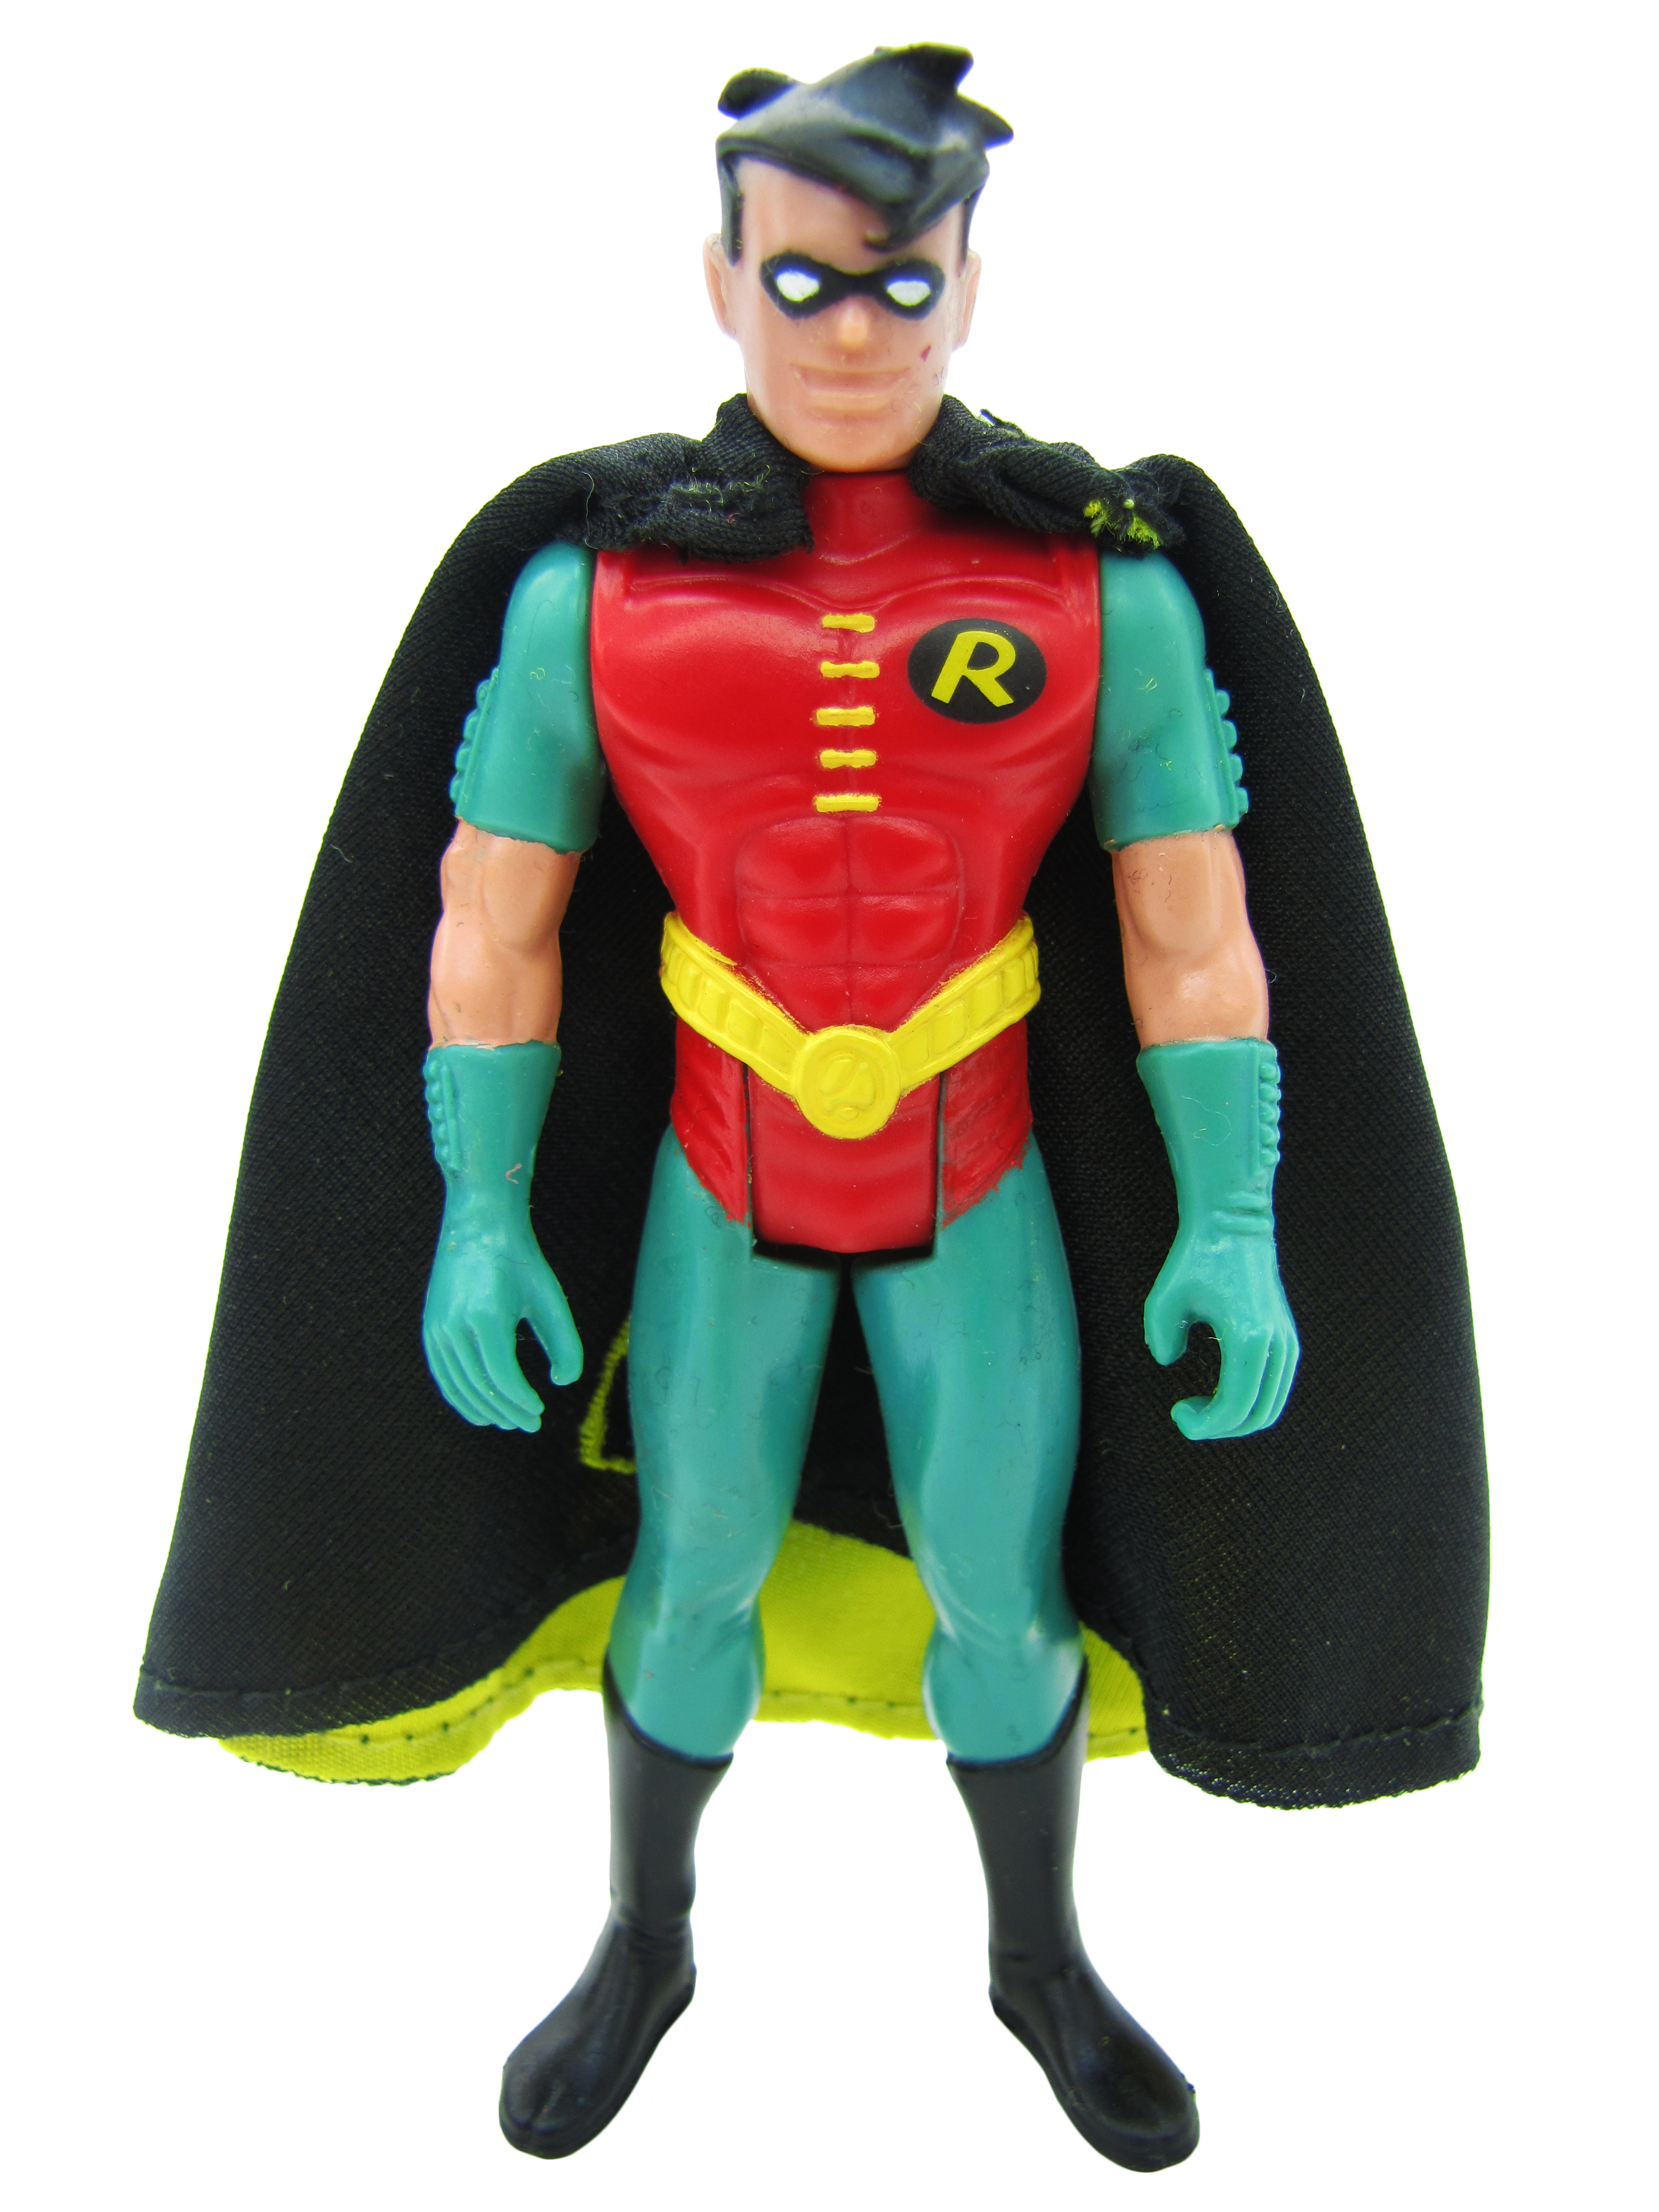 1992 Batman The Animated Series TURBO GLIDER ROBIN with Cape Mint